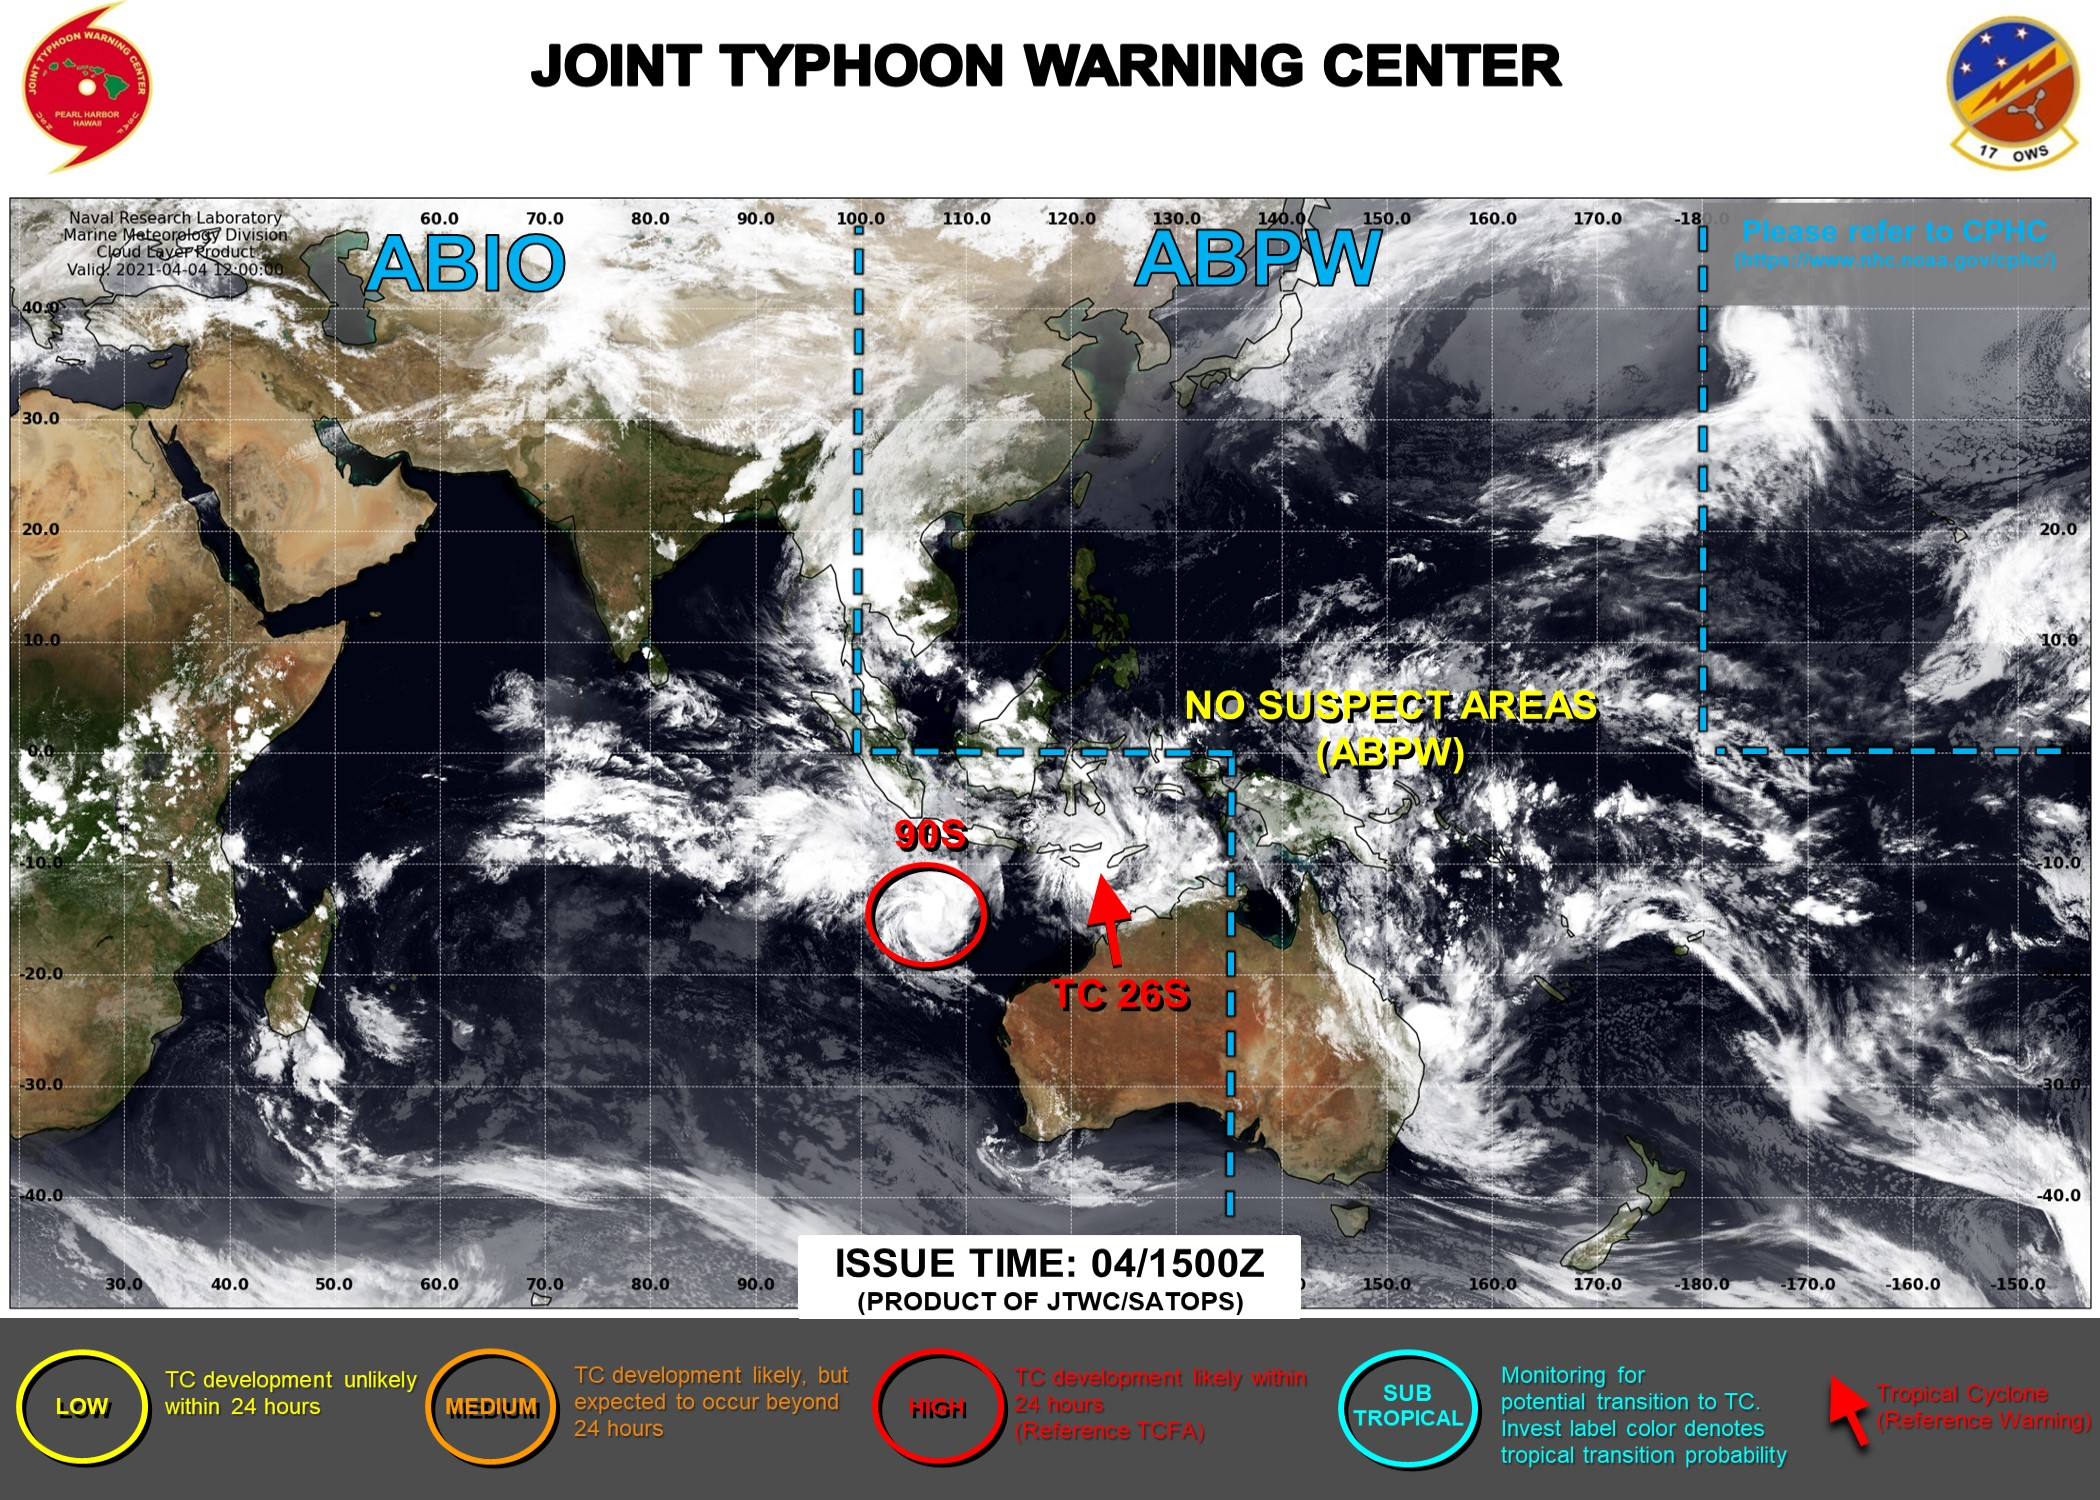 04/15UTC. INVEST 99S IS NOW TC 26S WITH 35KNOT WINDS. INVEST 90S WAS UP-GRADED TO HIGH AT 04/08UTC. JTWC IS ISSUING 6 HOURLY WARNINGS ON 26S AND 3HOURLY SATELLITE BULLETINS ON BOTH SYSTEMS.